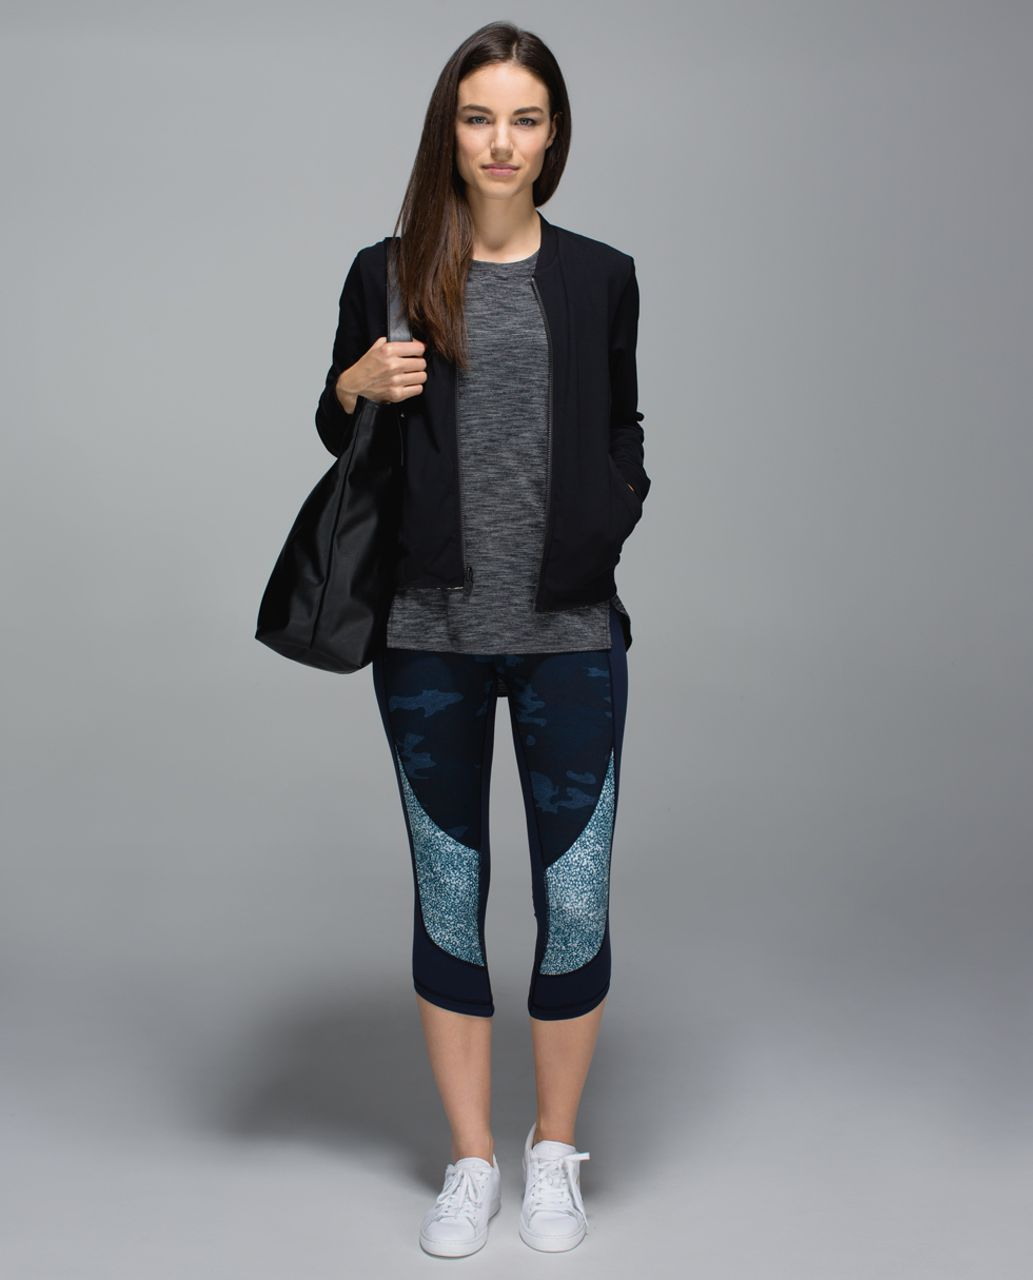 Lululemon Wunder Under Crop *Full-On Luon - Heathered Texture Lotus Camo Oil Slick Blue / Inkwell / Pebble Print Parfait Pink Alberta Lake